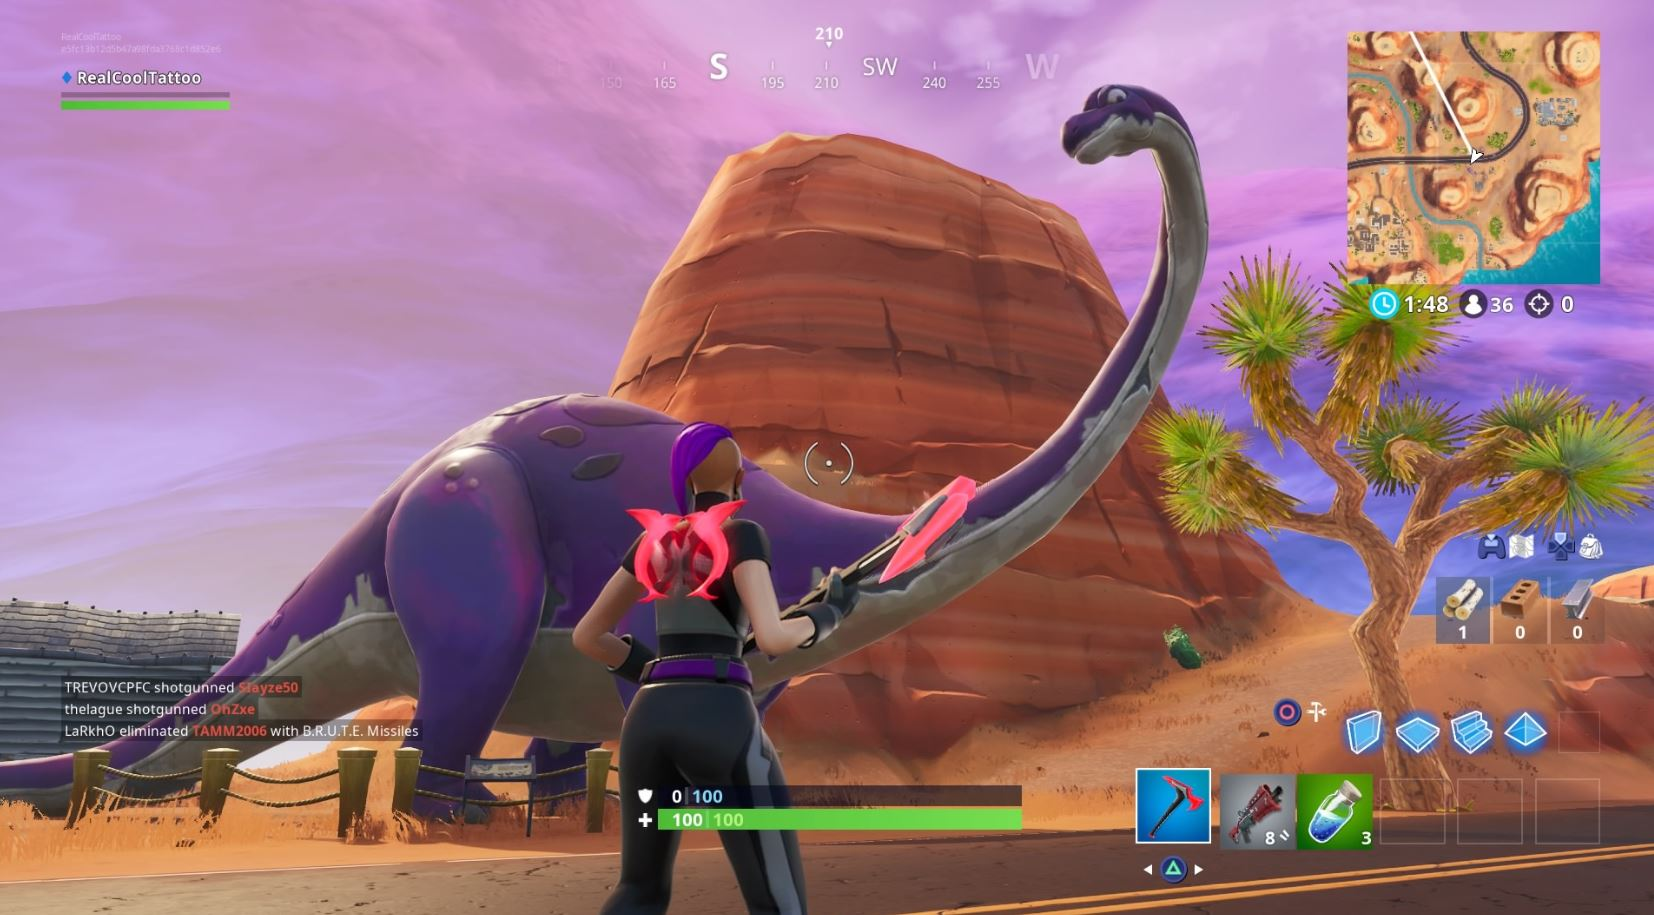 , Fortnite: Visit a Drift painted Durrr Burger Head, dinosaur and stone head statue locations, AllYourGames.com, AllYourGames.com